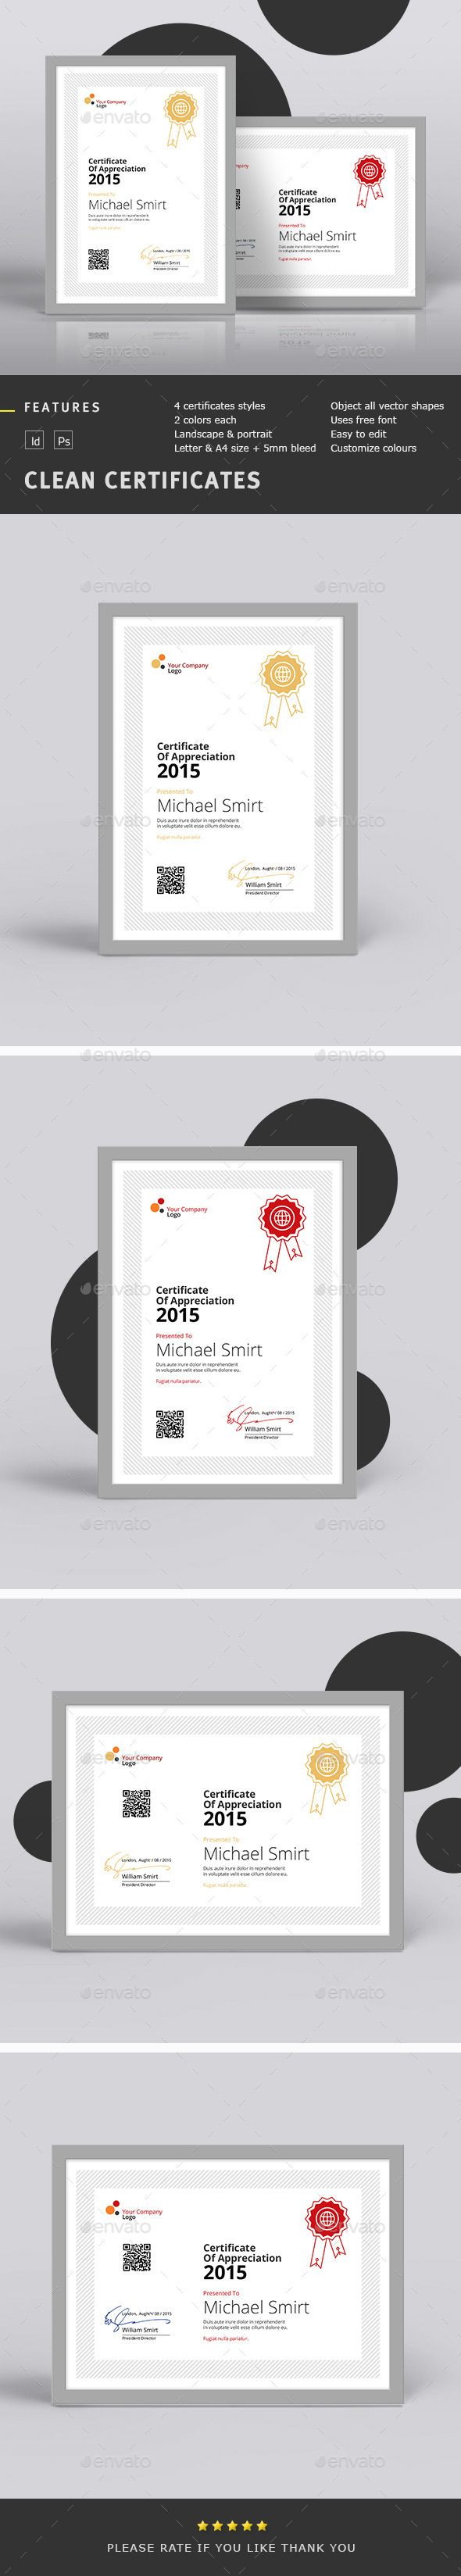 82 best this is certificate images on pinterest award certificates clean certificates psd template consideration certificate download https yadclub Image collections